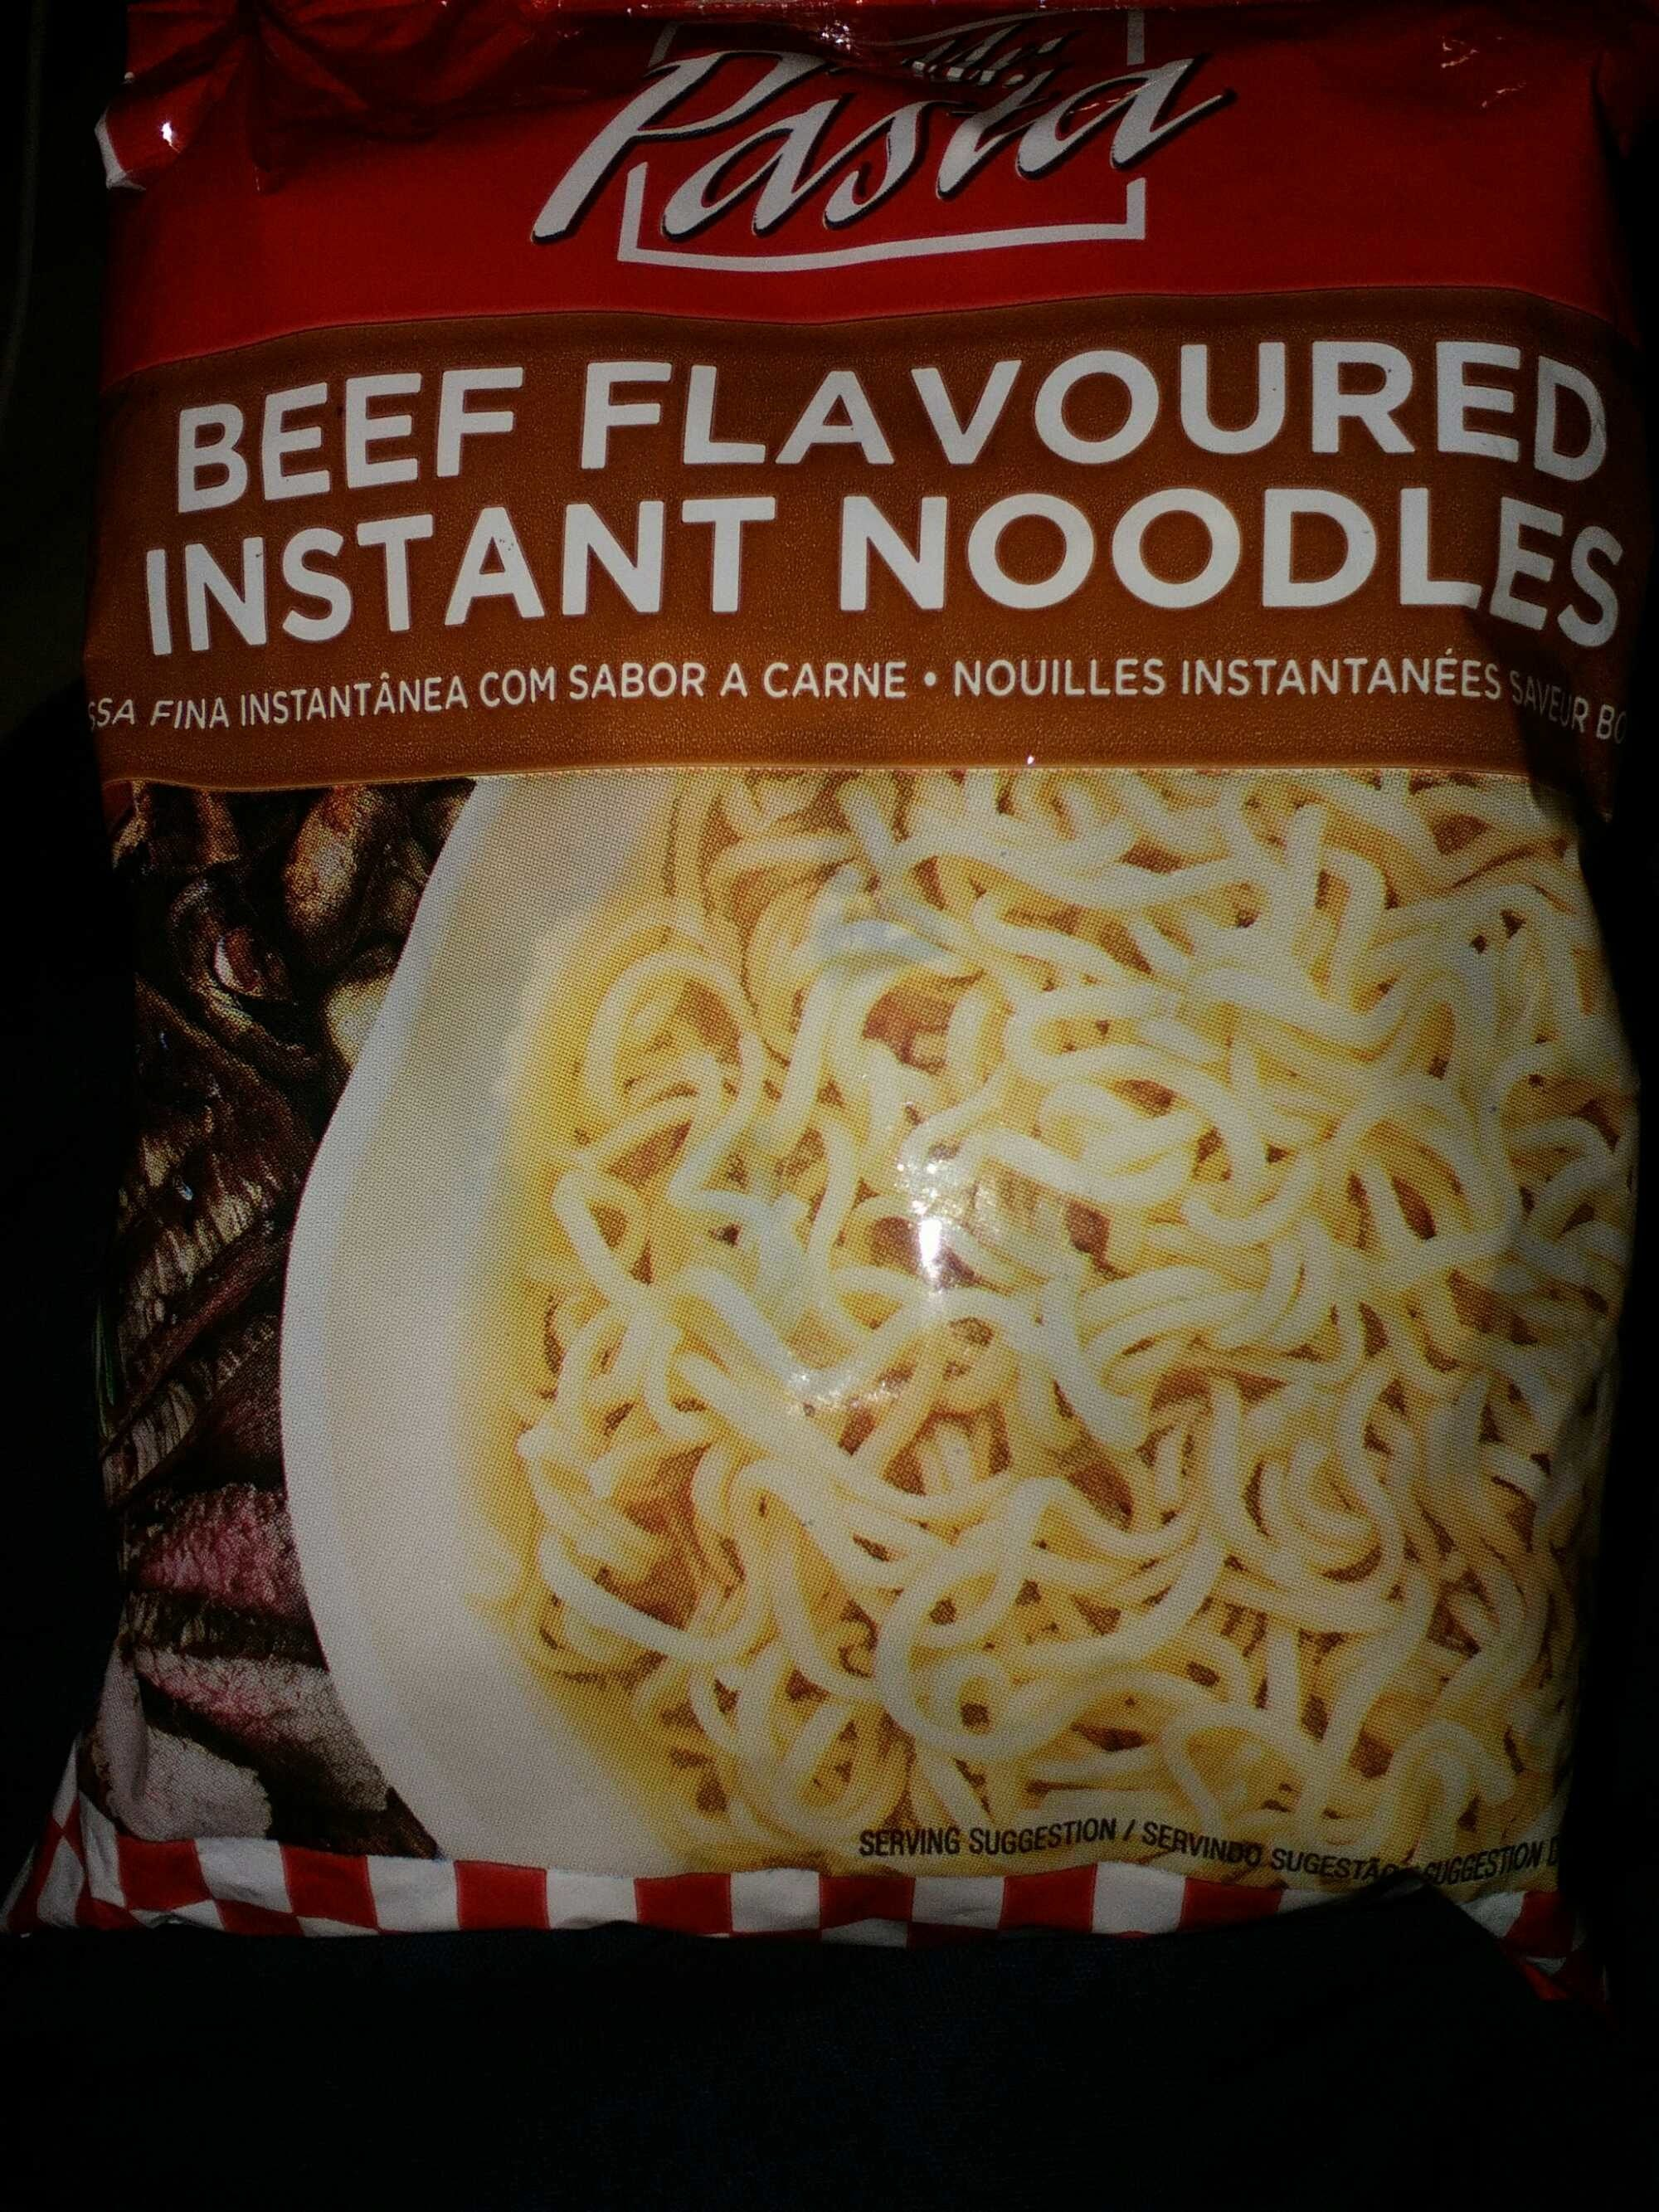 Beef Flavoured Instant Noodles - Product